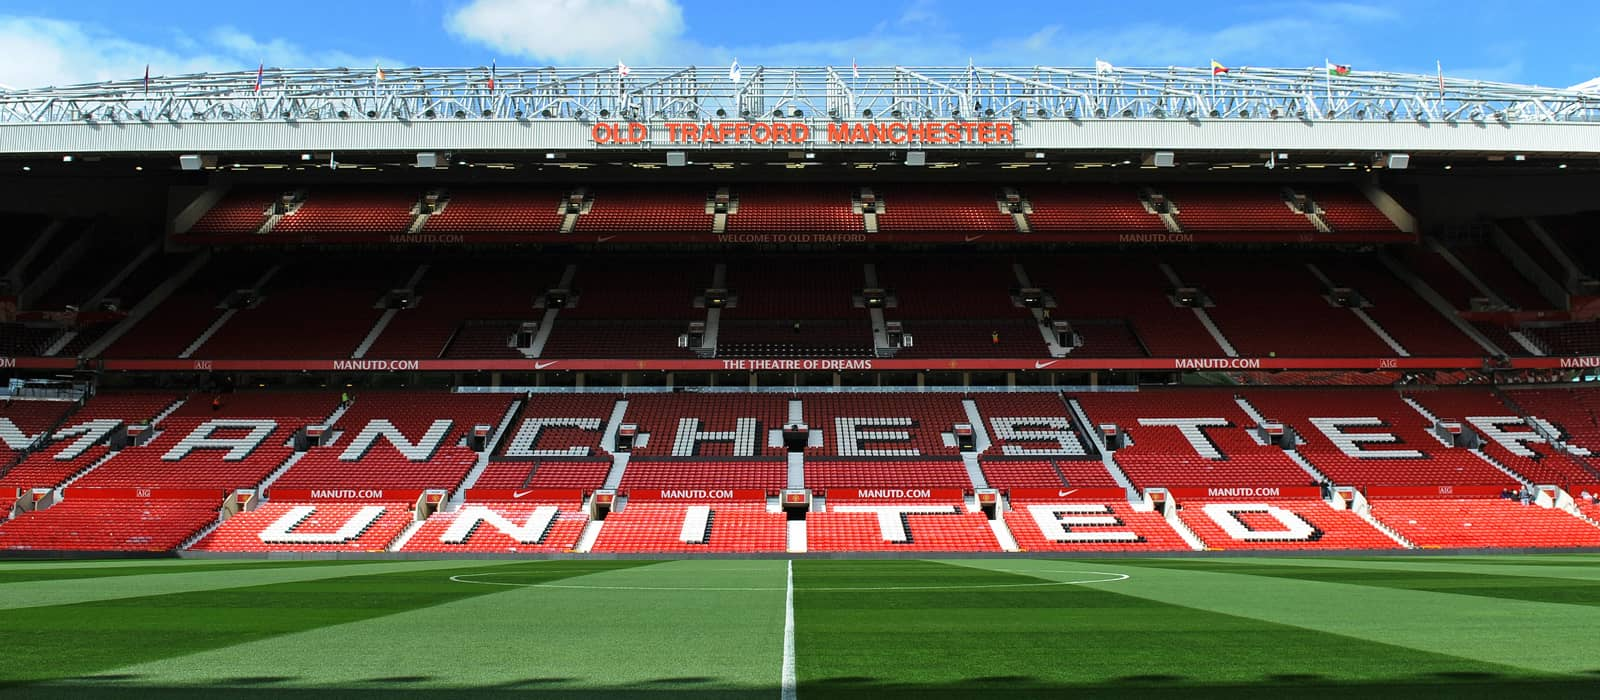 Manchester United: We'll never rename Old Trafford